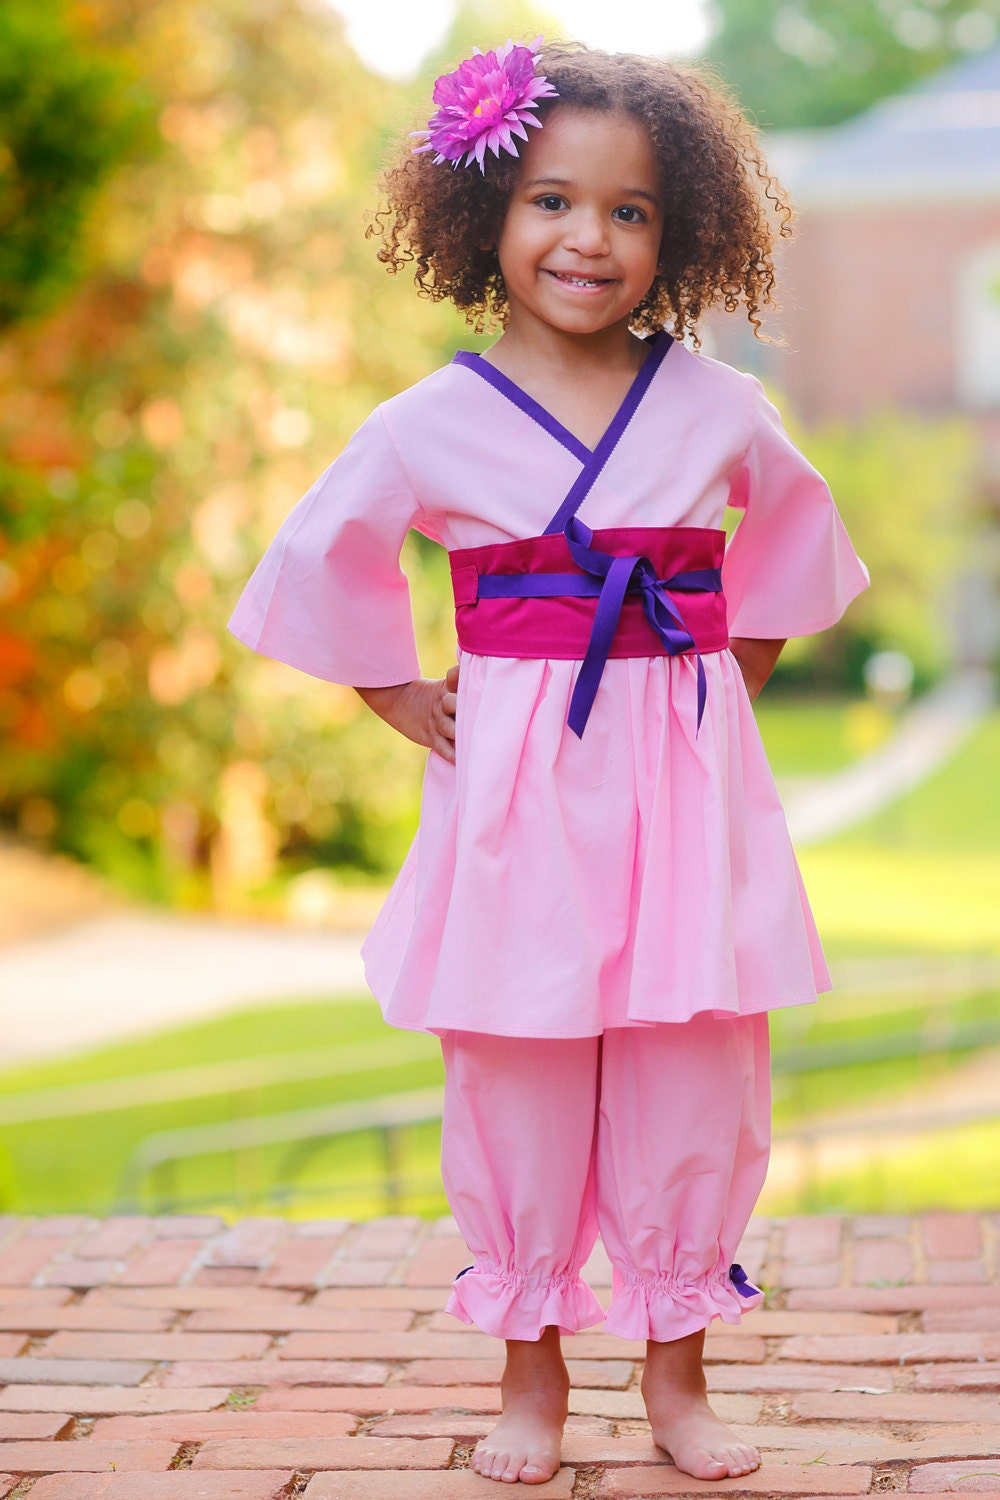 Princess Mulan Pink Outfit Little Girl Clothes Birthday